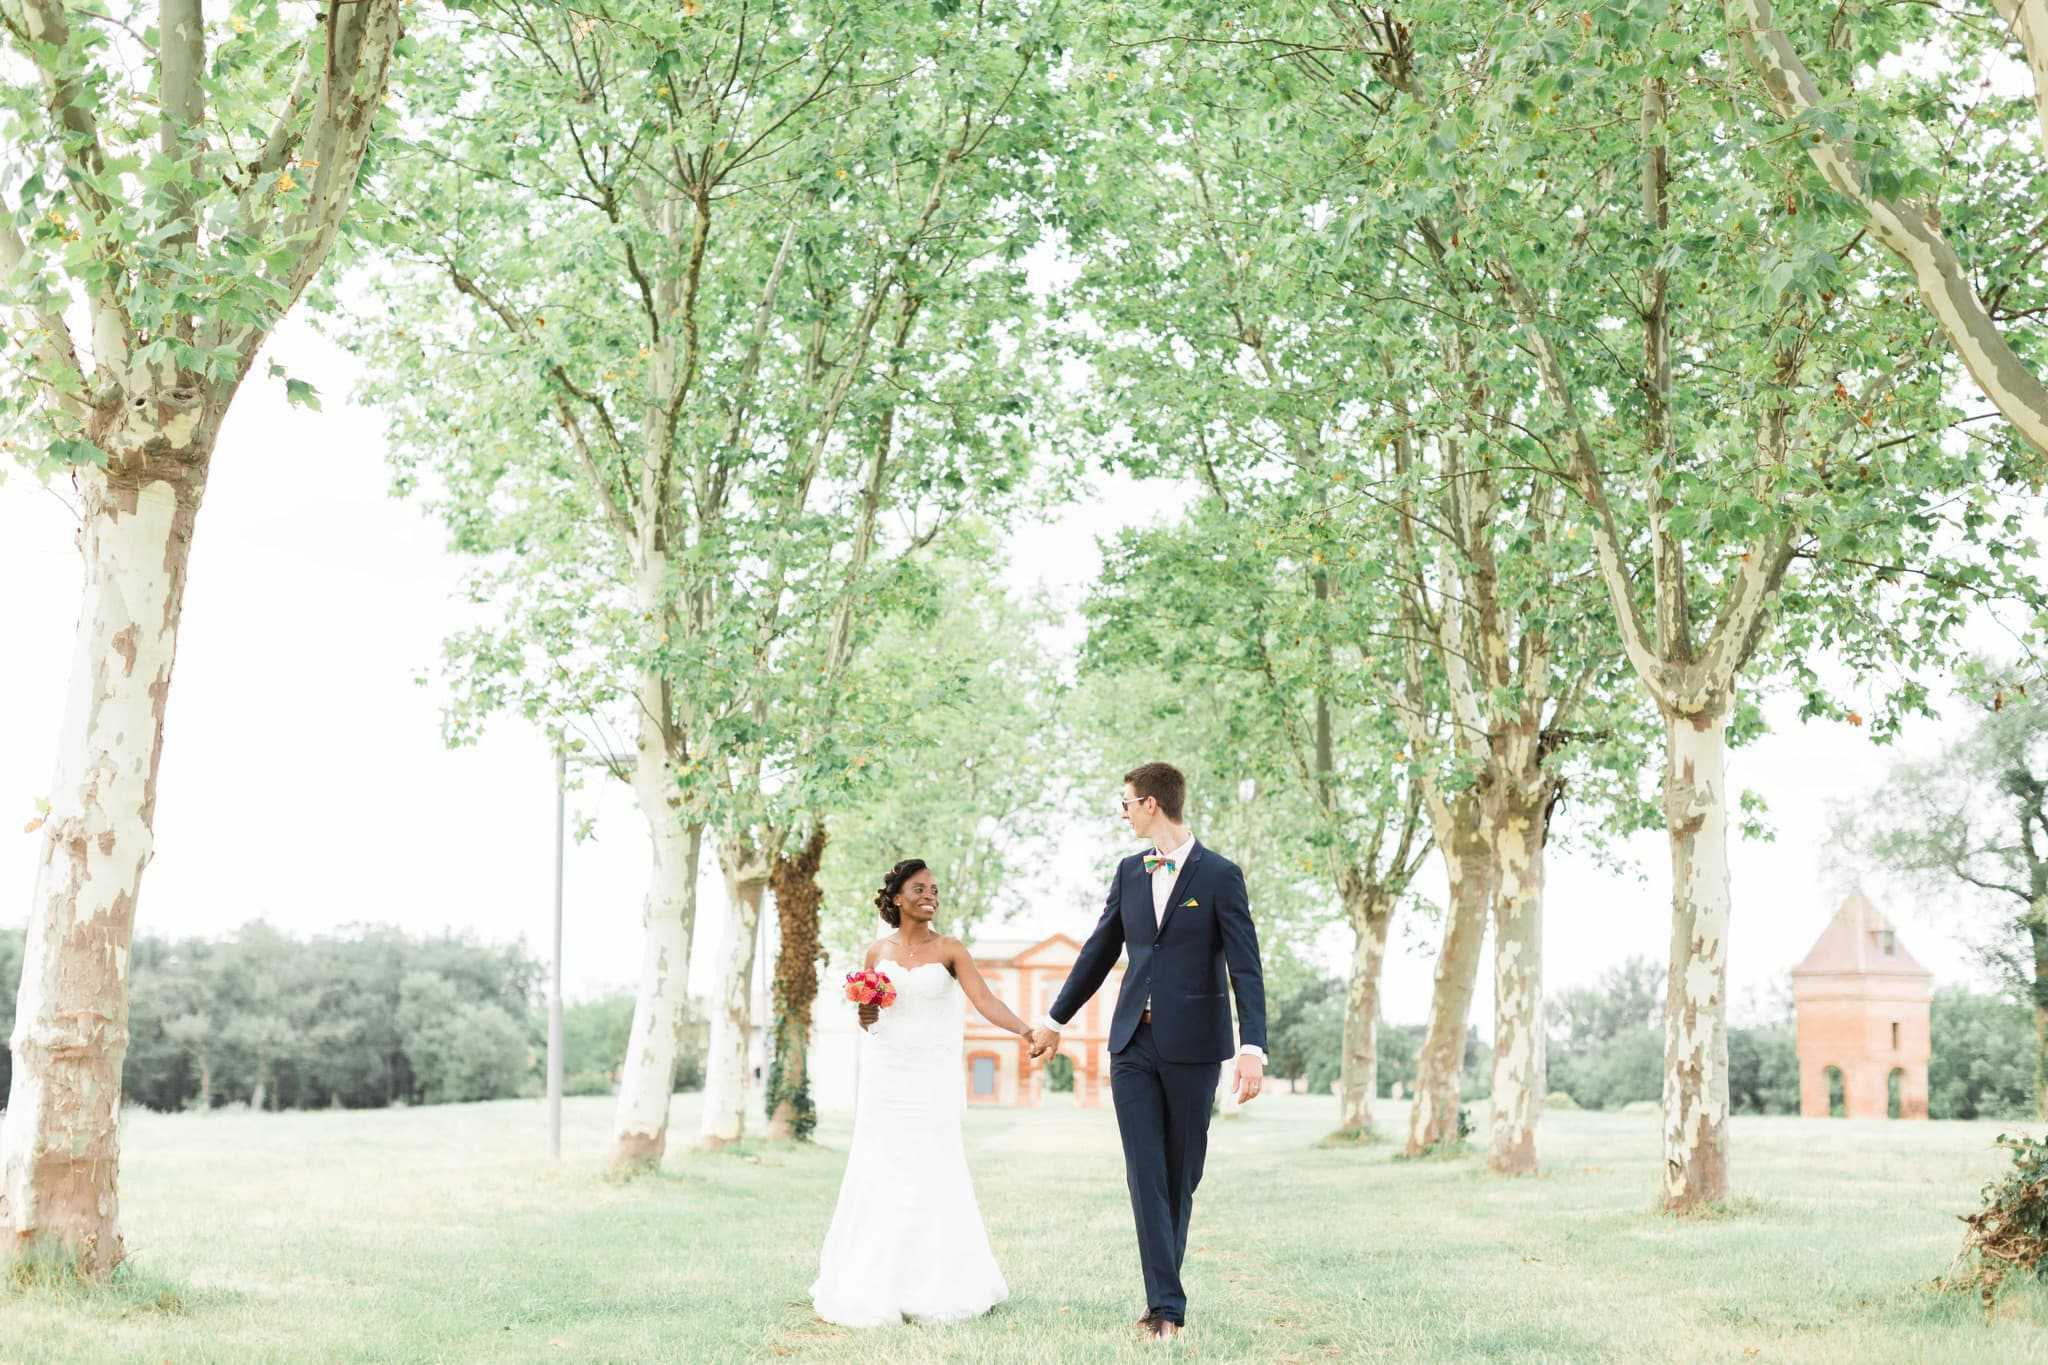 Guillaume Gimenez / toulouse / photographe mariage / destination wedding photographer